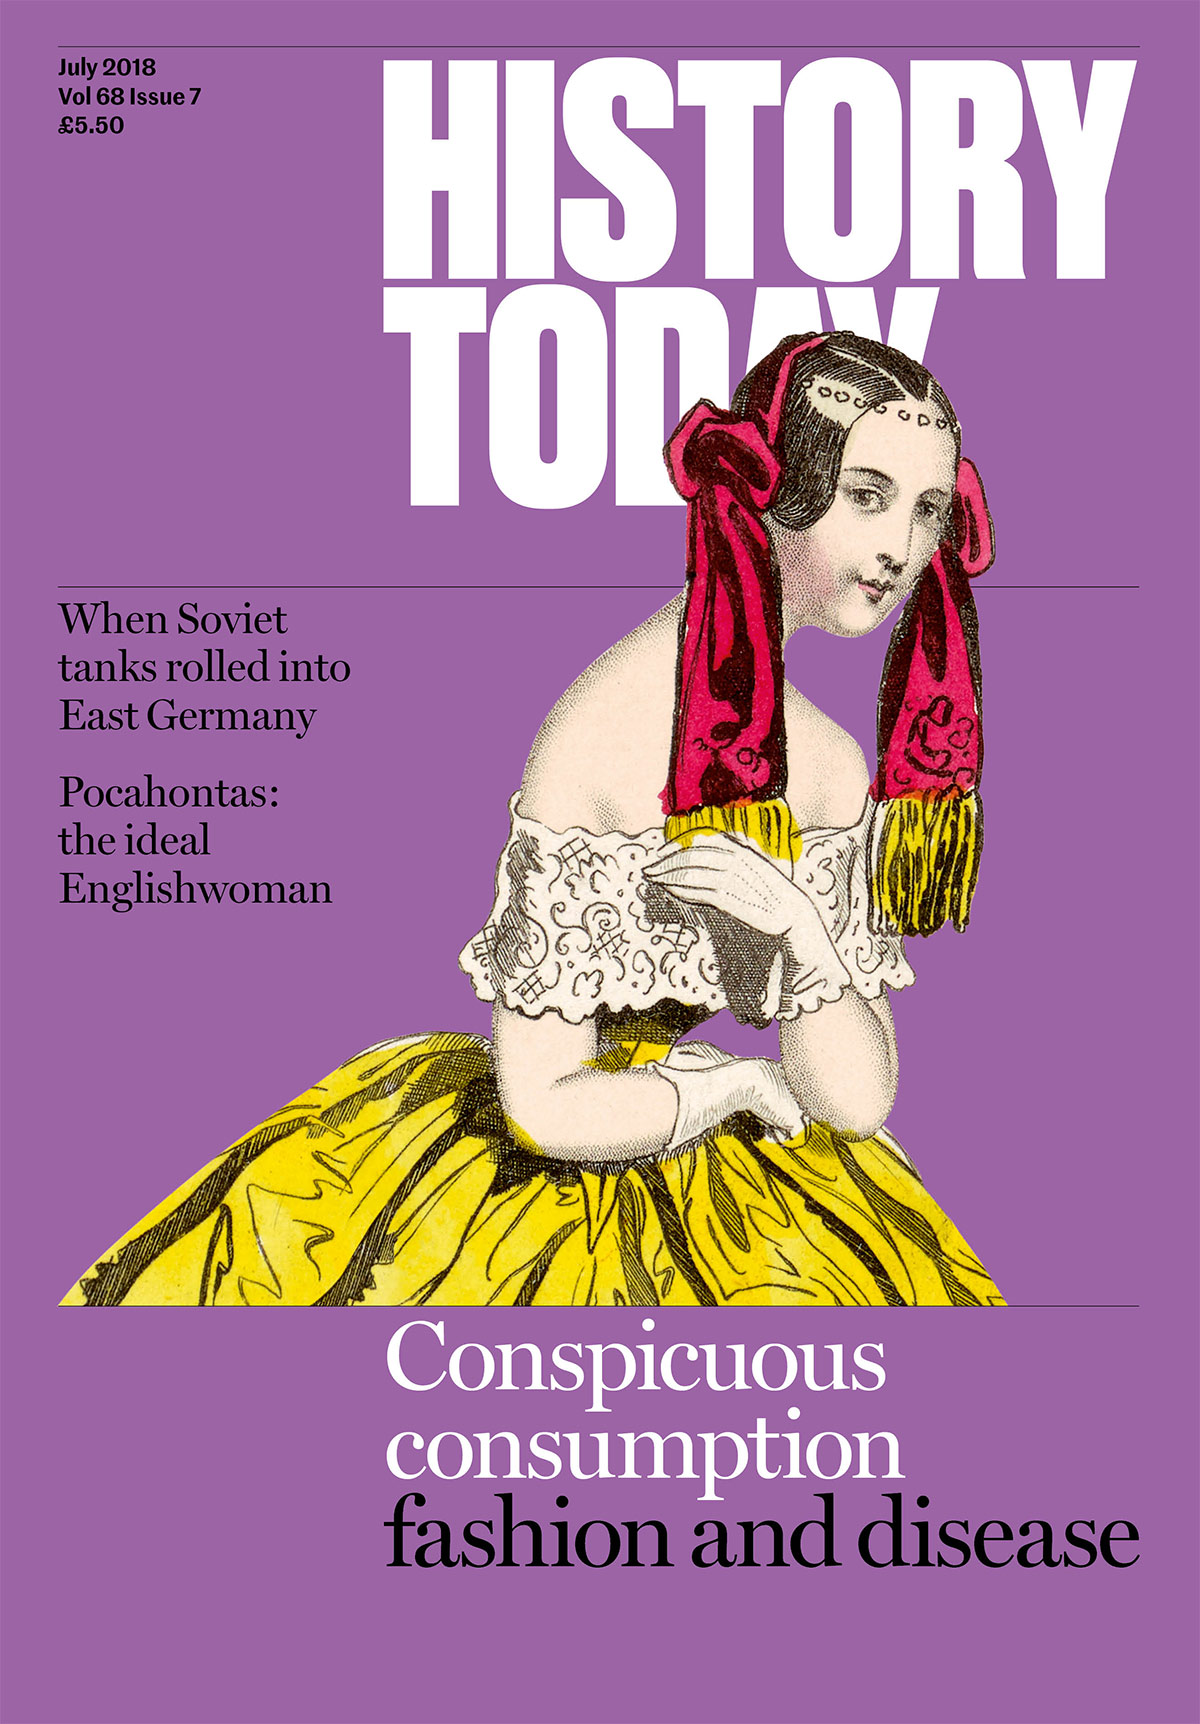 Cover of the July issue